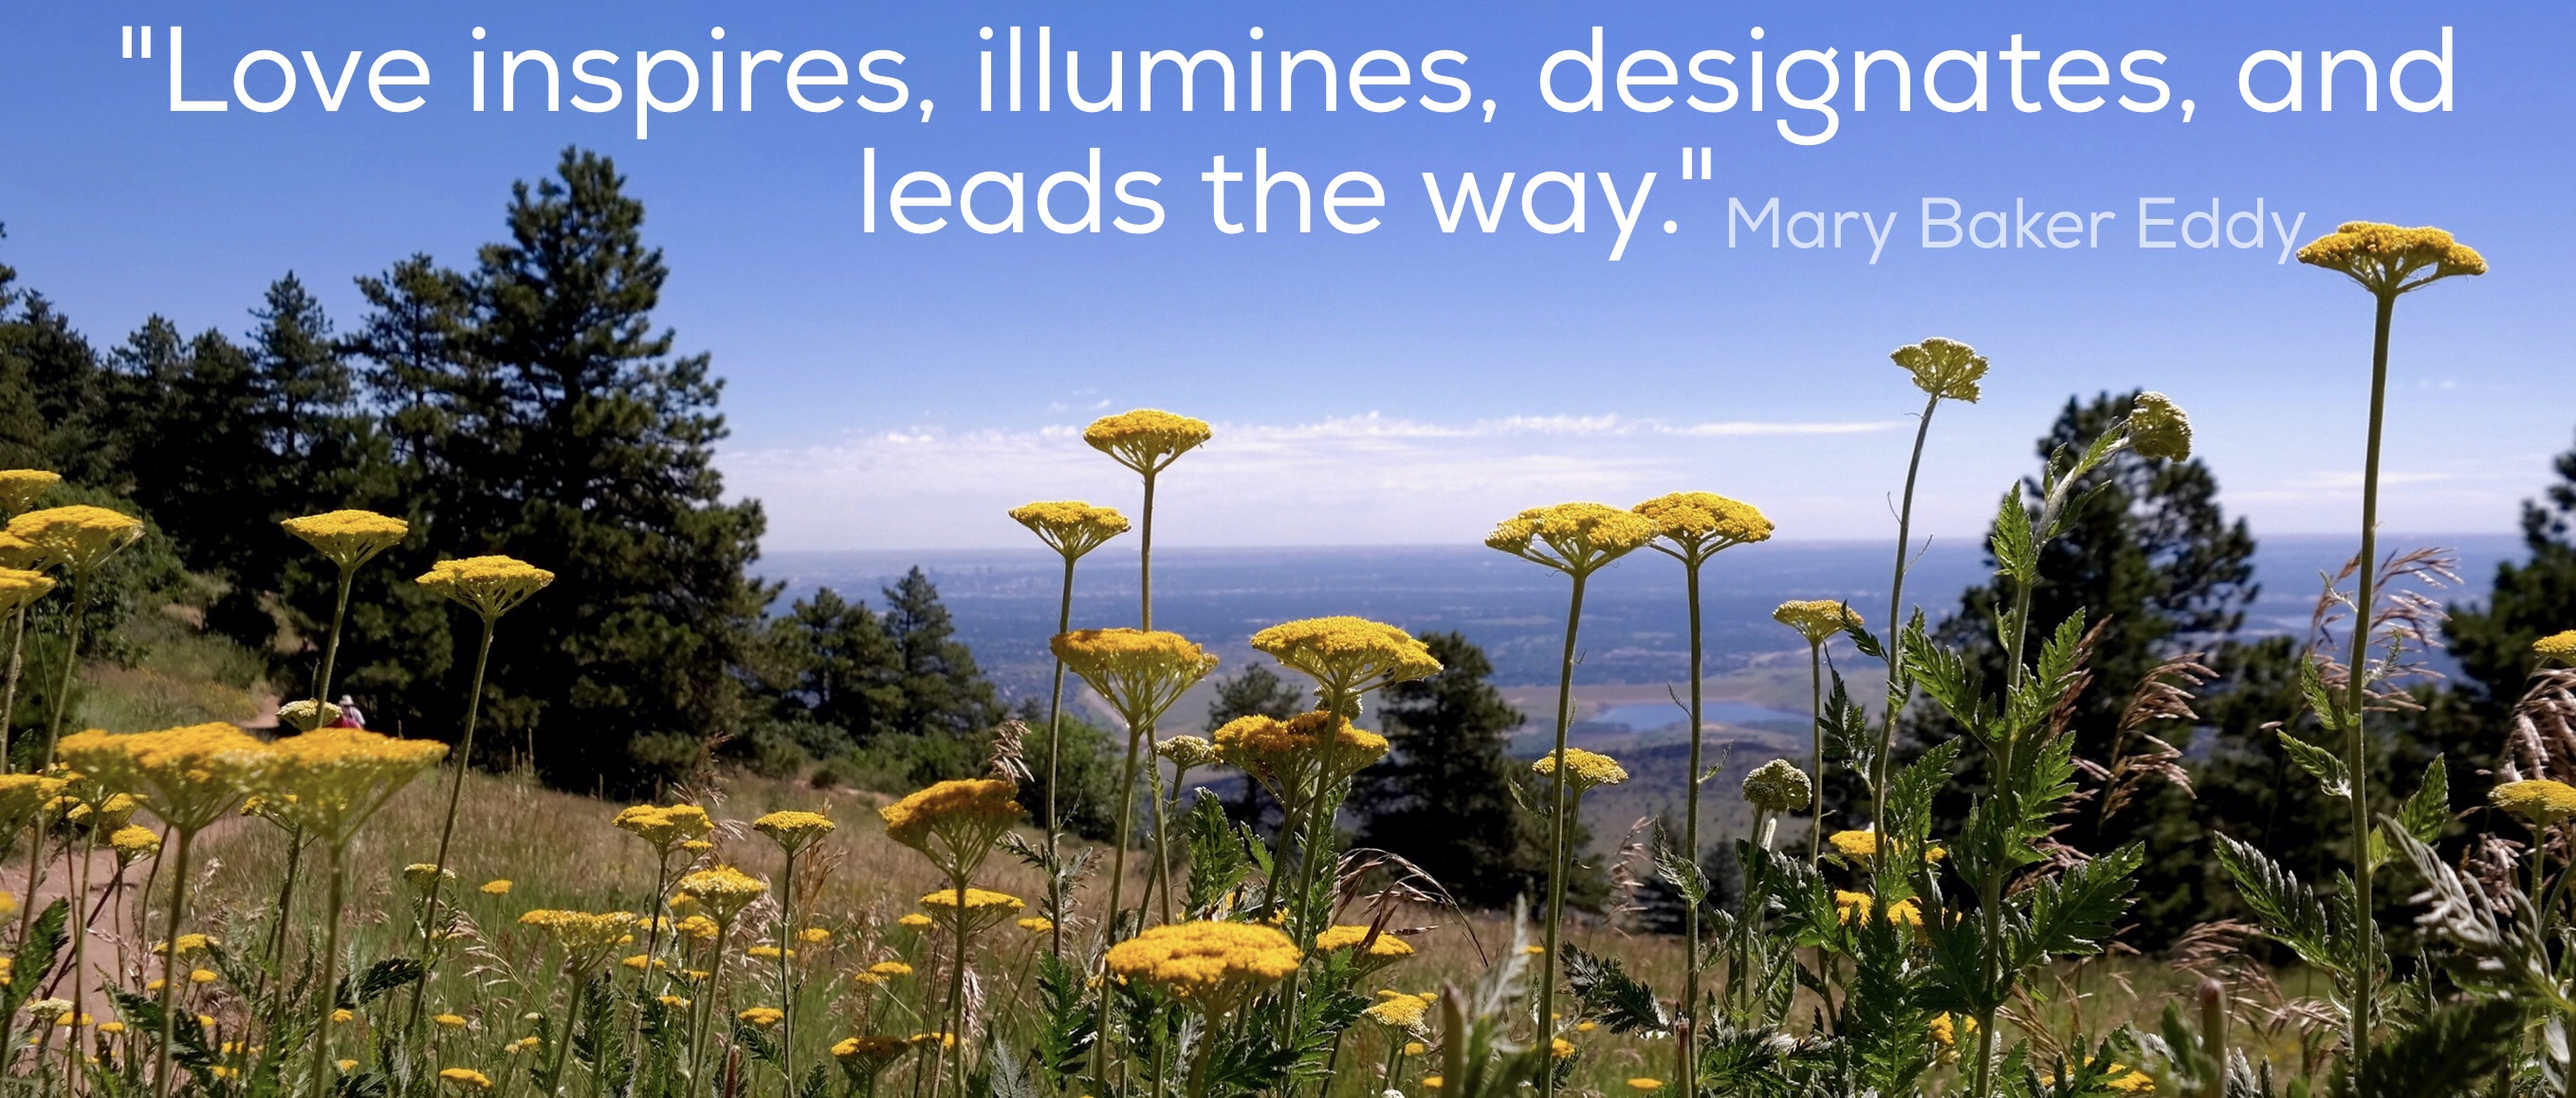 Love inspires, illumines, designates and leads the way.